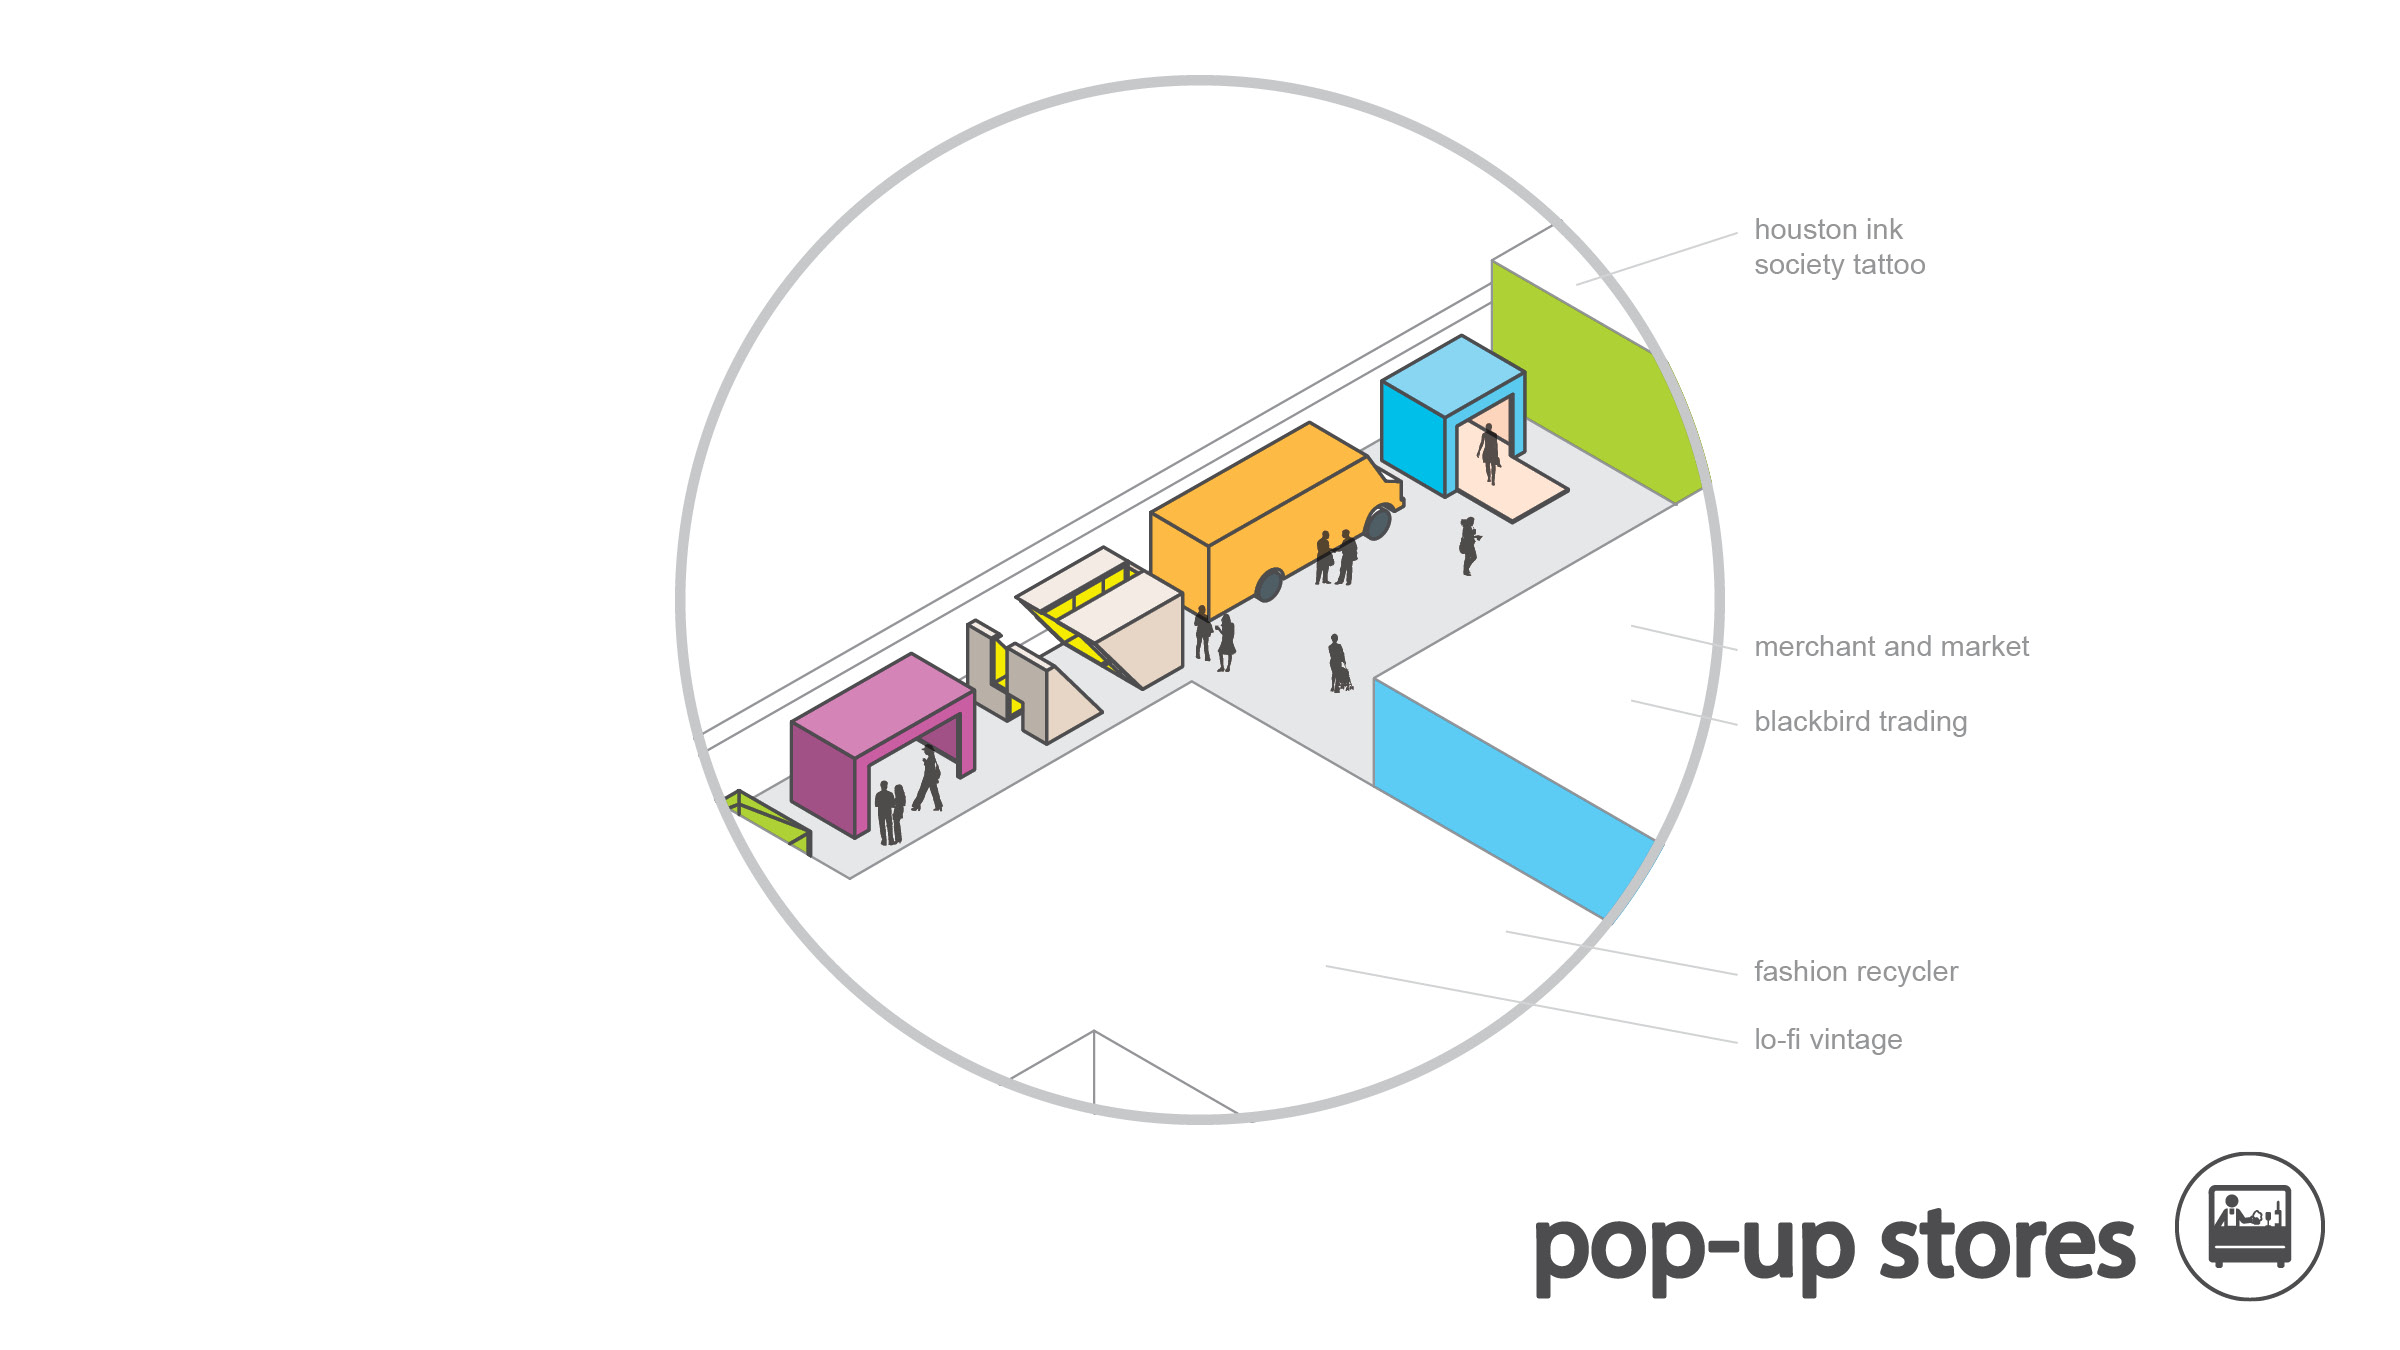 temporary pop-up stores feature start-up businesses and new market products